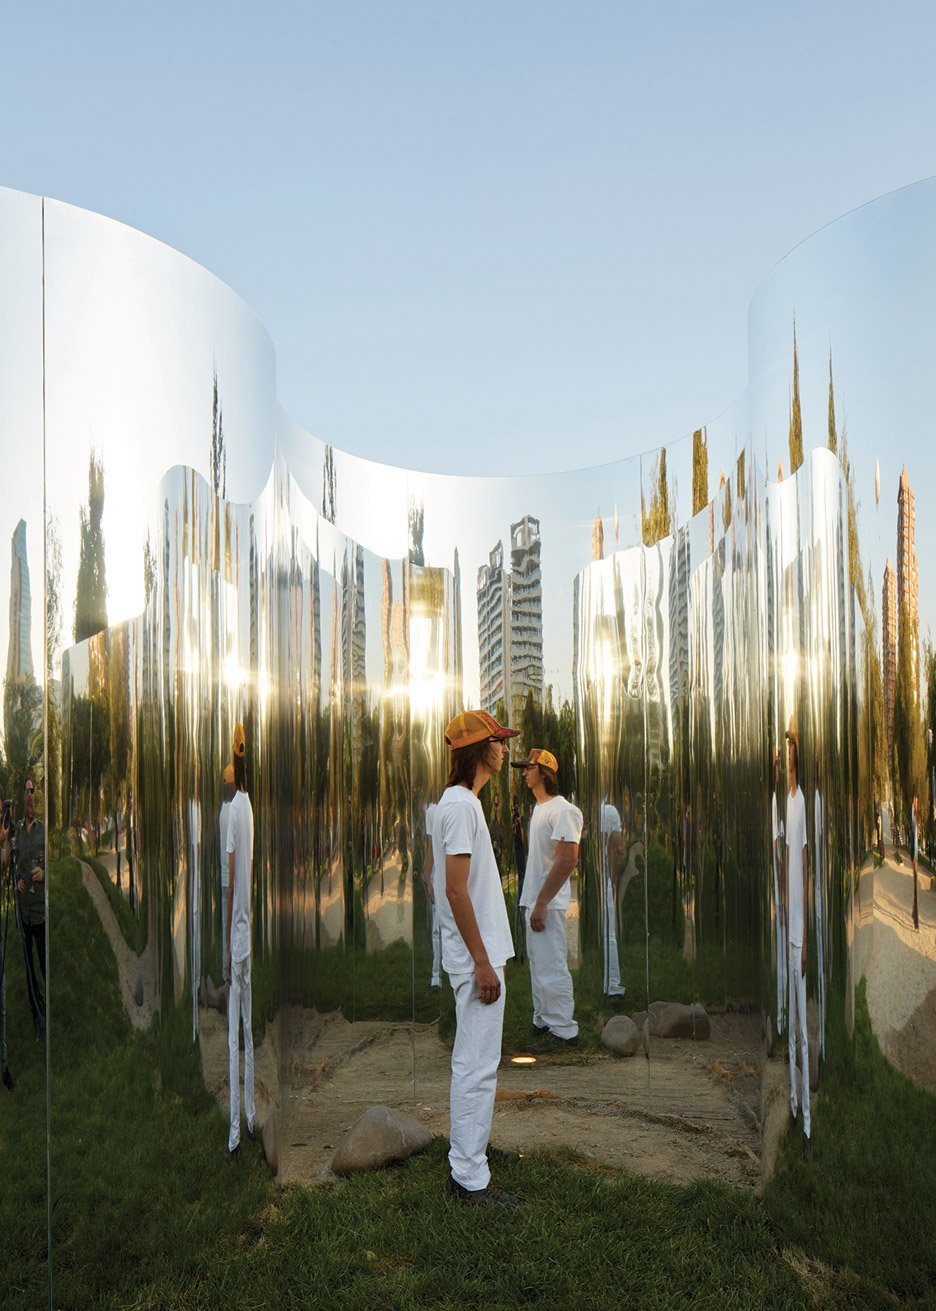 yap-constructo-6-your-reflection-guillermo-hevia-garcia-nicolas-urzua-pavilion-architecture-installation-mirrors-santiago-chile_dezeen_936_11